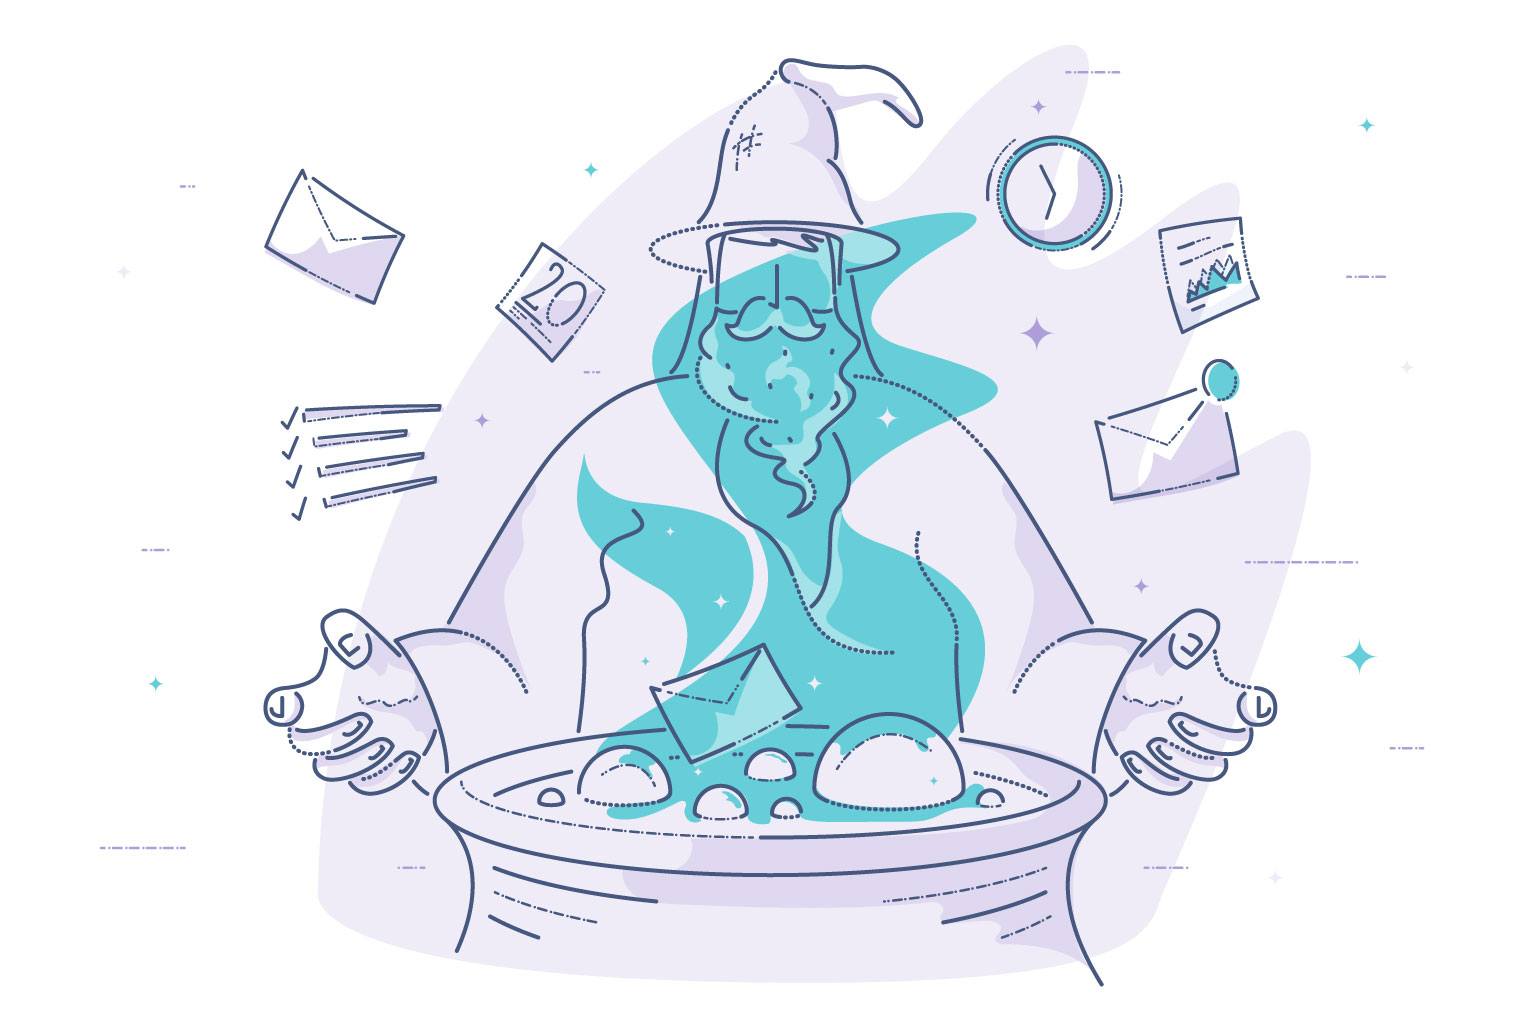 Email Campaigns: Magic Formula - Illustration of wizard in front of cauldron creating magic email formula